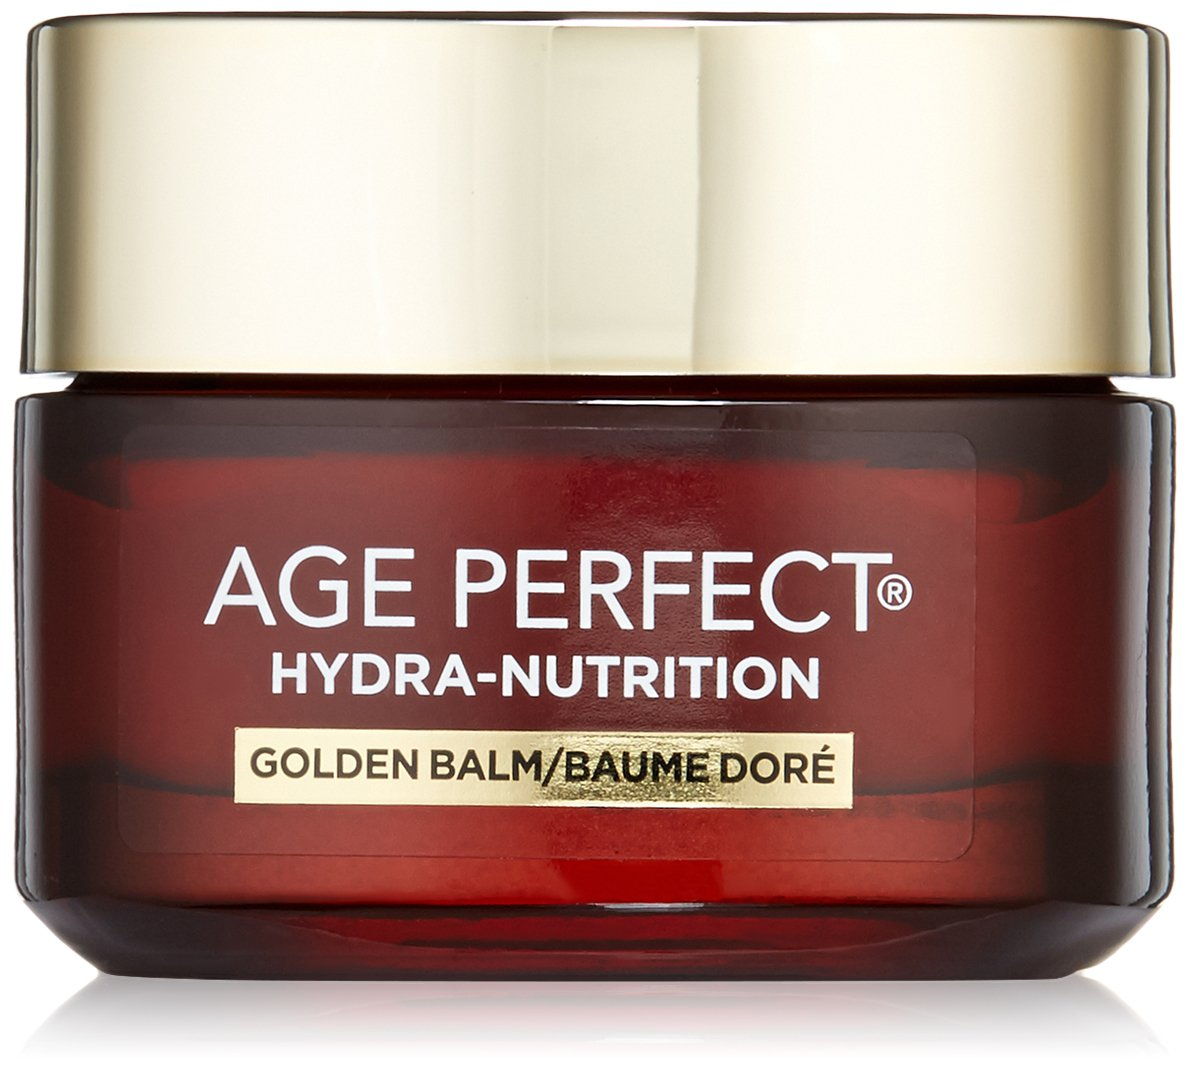 L'Oréal Paris Skincare Age Perfect Hydra-Nutrition Golden Balm Moisturizer for Face, Neck and Chest, Formulated with Calcium and Precious Oils, 1.7 oz. by L'Oreal Paris (Image #1)